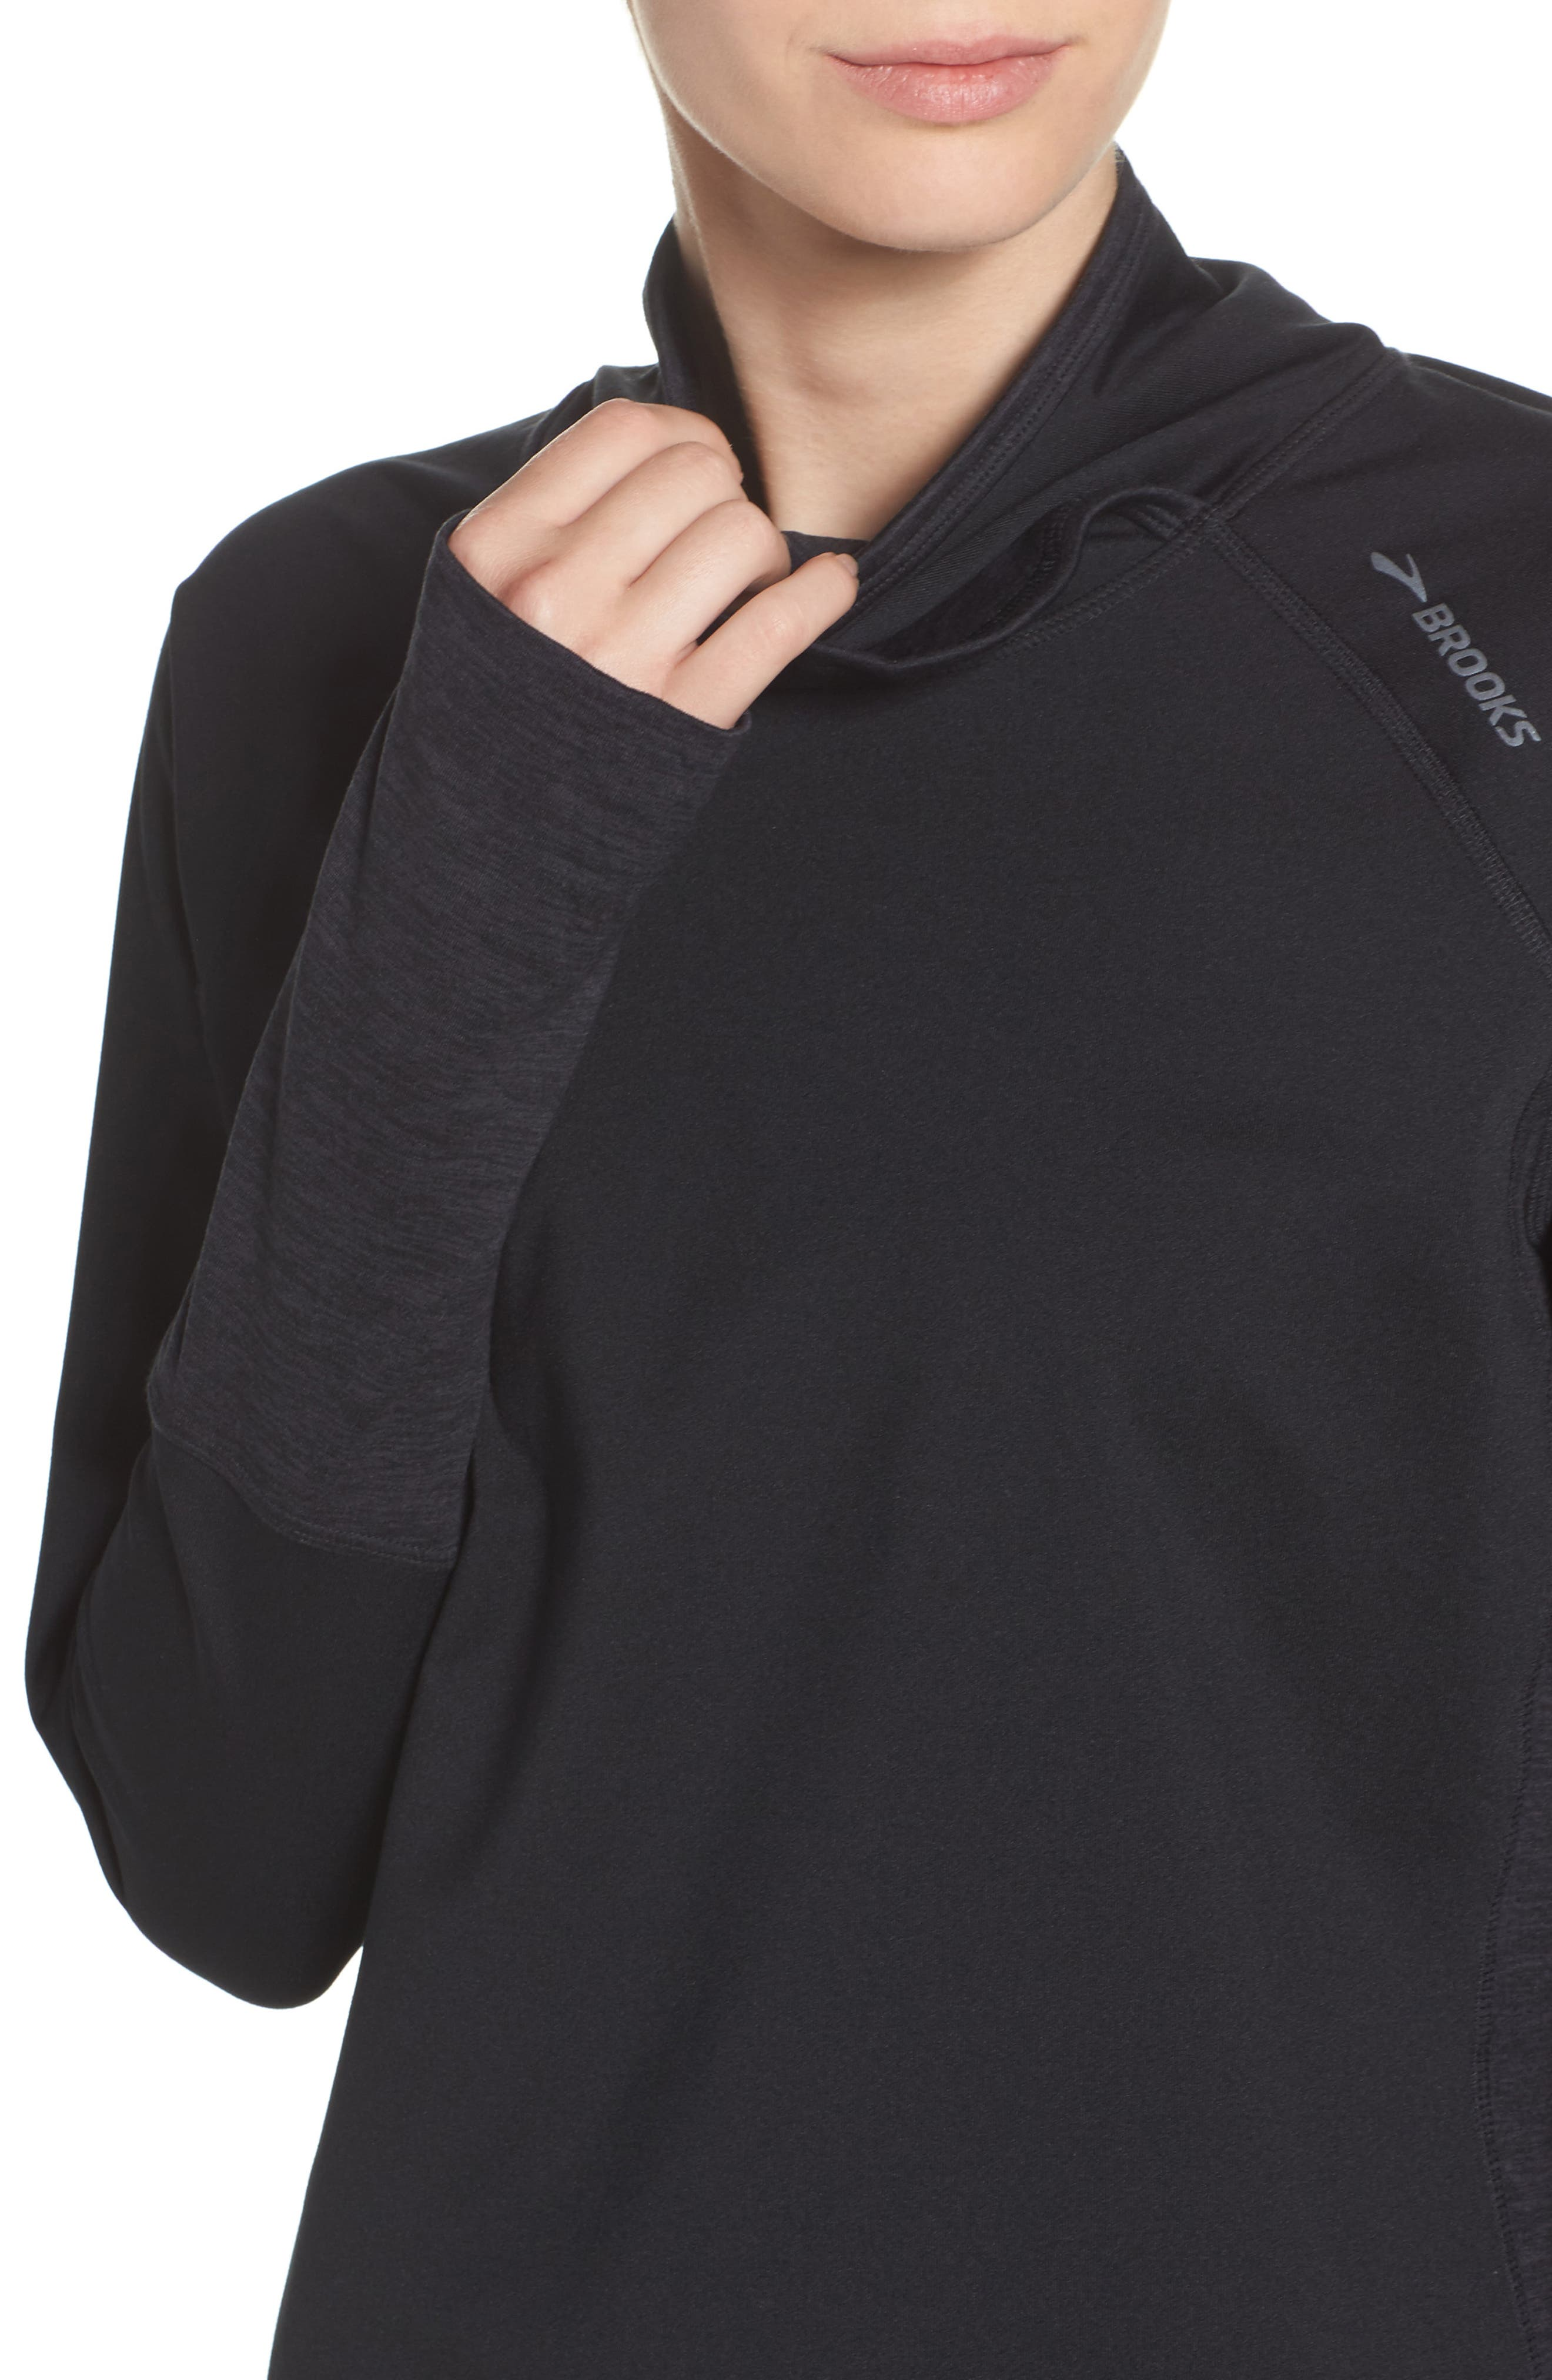 Performance Pullover,                             Alternate thumbnail 4, color,                             001